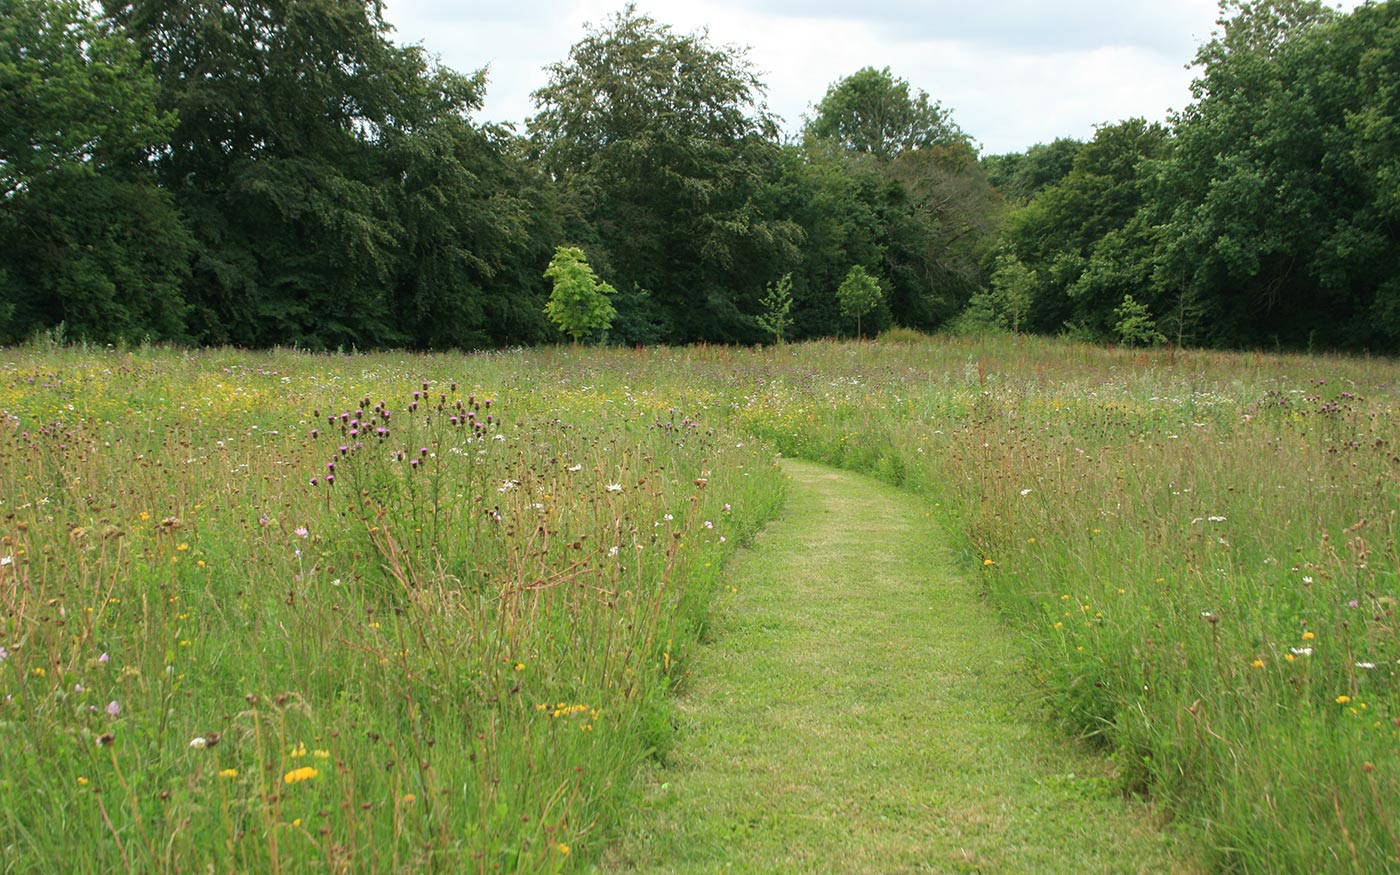 A Modern Wildflower Garden - Landscape design project by Susannah McDougall, Norfolk